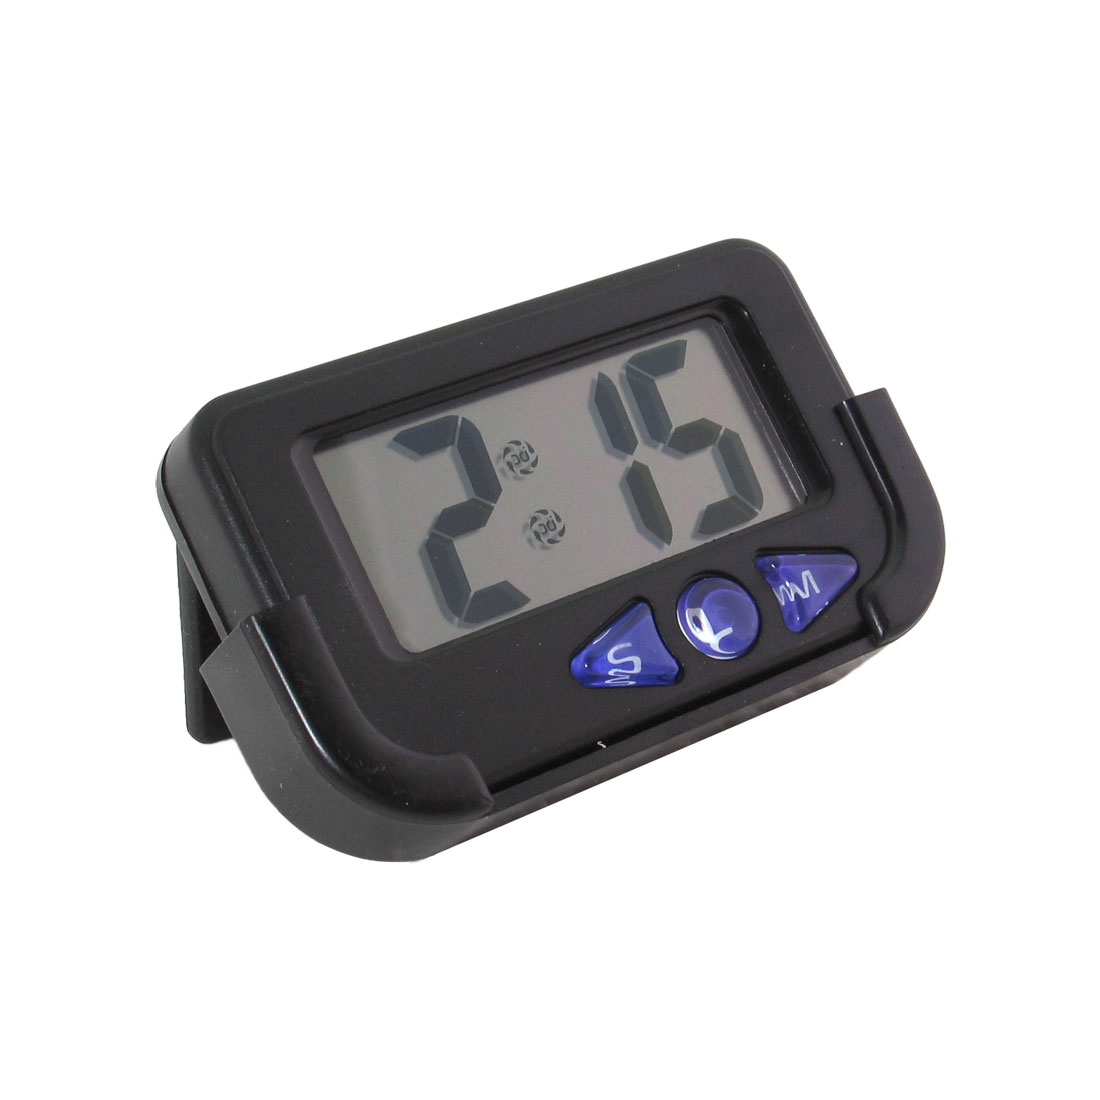 Pocket Sized Digital Electronic Travel Clock